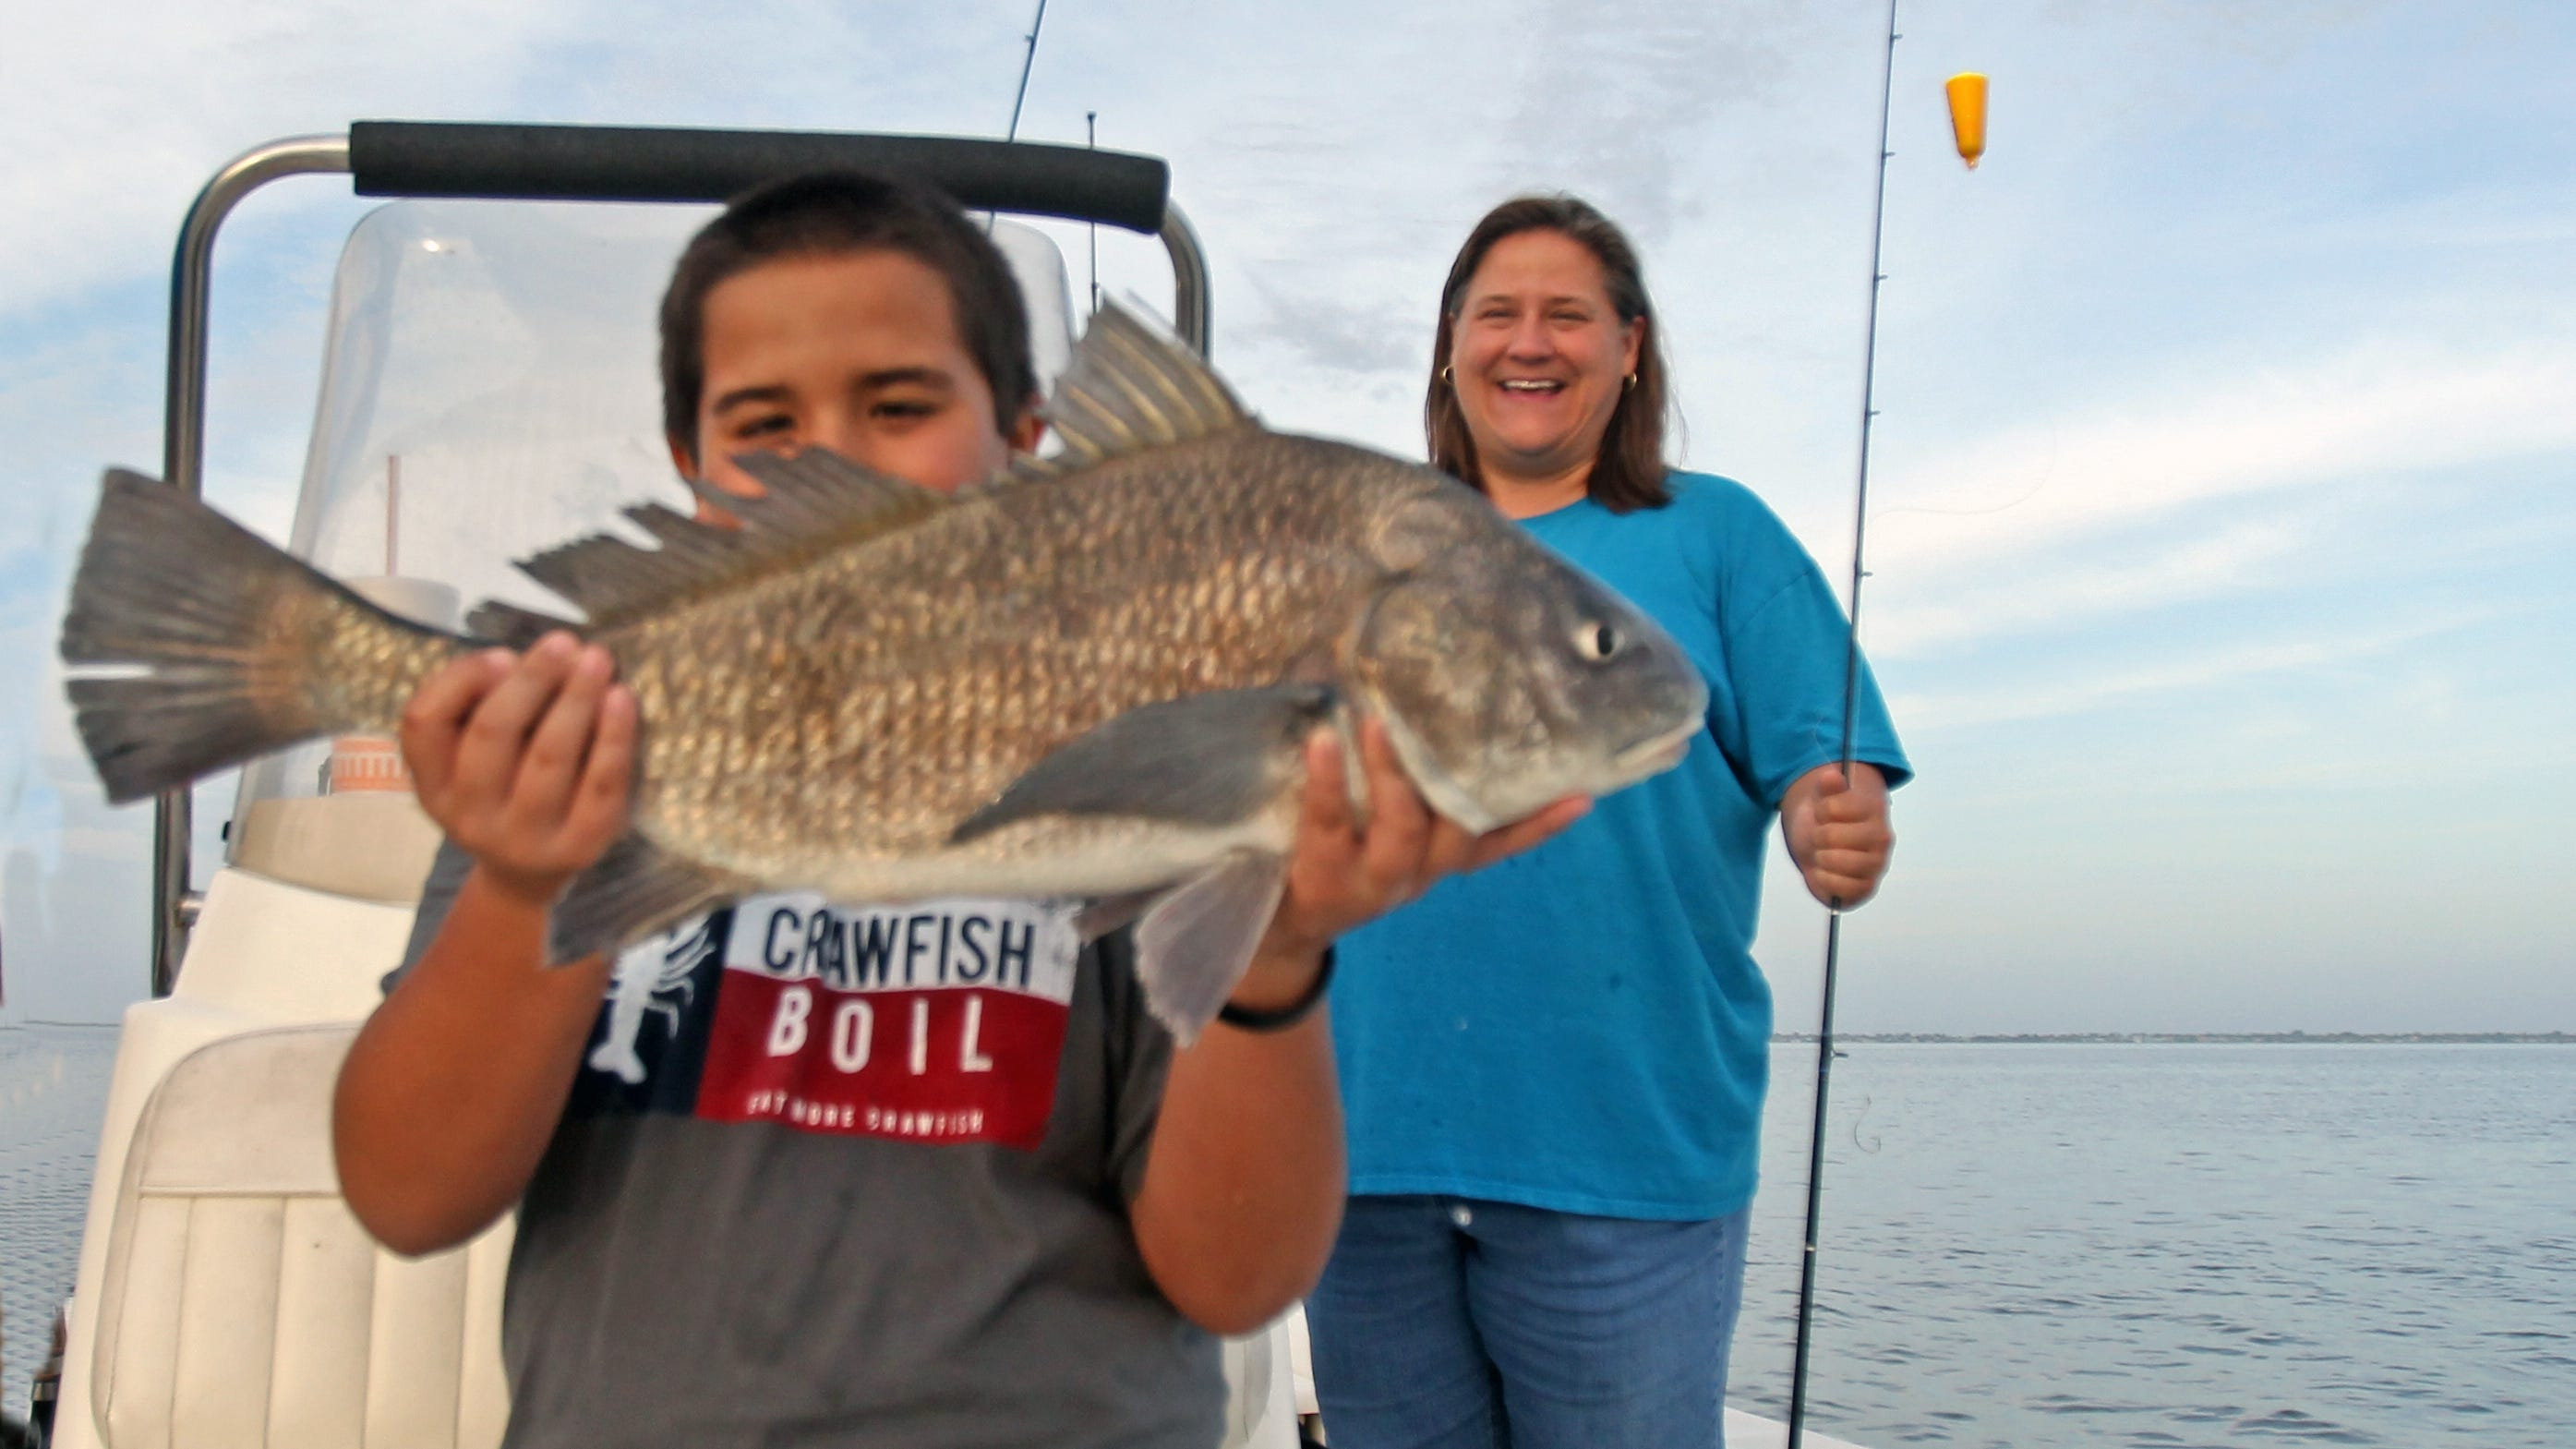 Jacob and his mom, Madonna Moore, enjoyed a free guided fishing trip paid for by a couple of South Texas anglers.